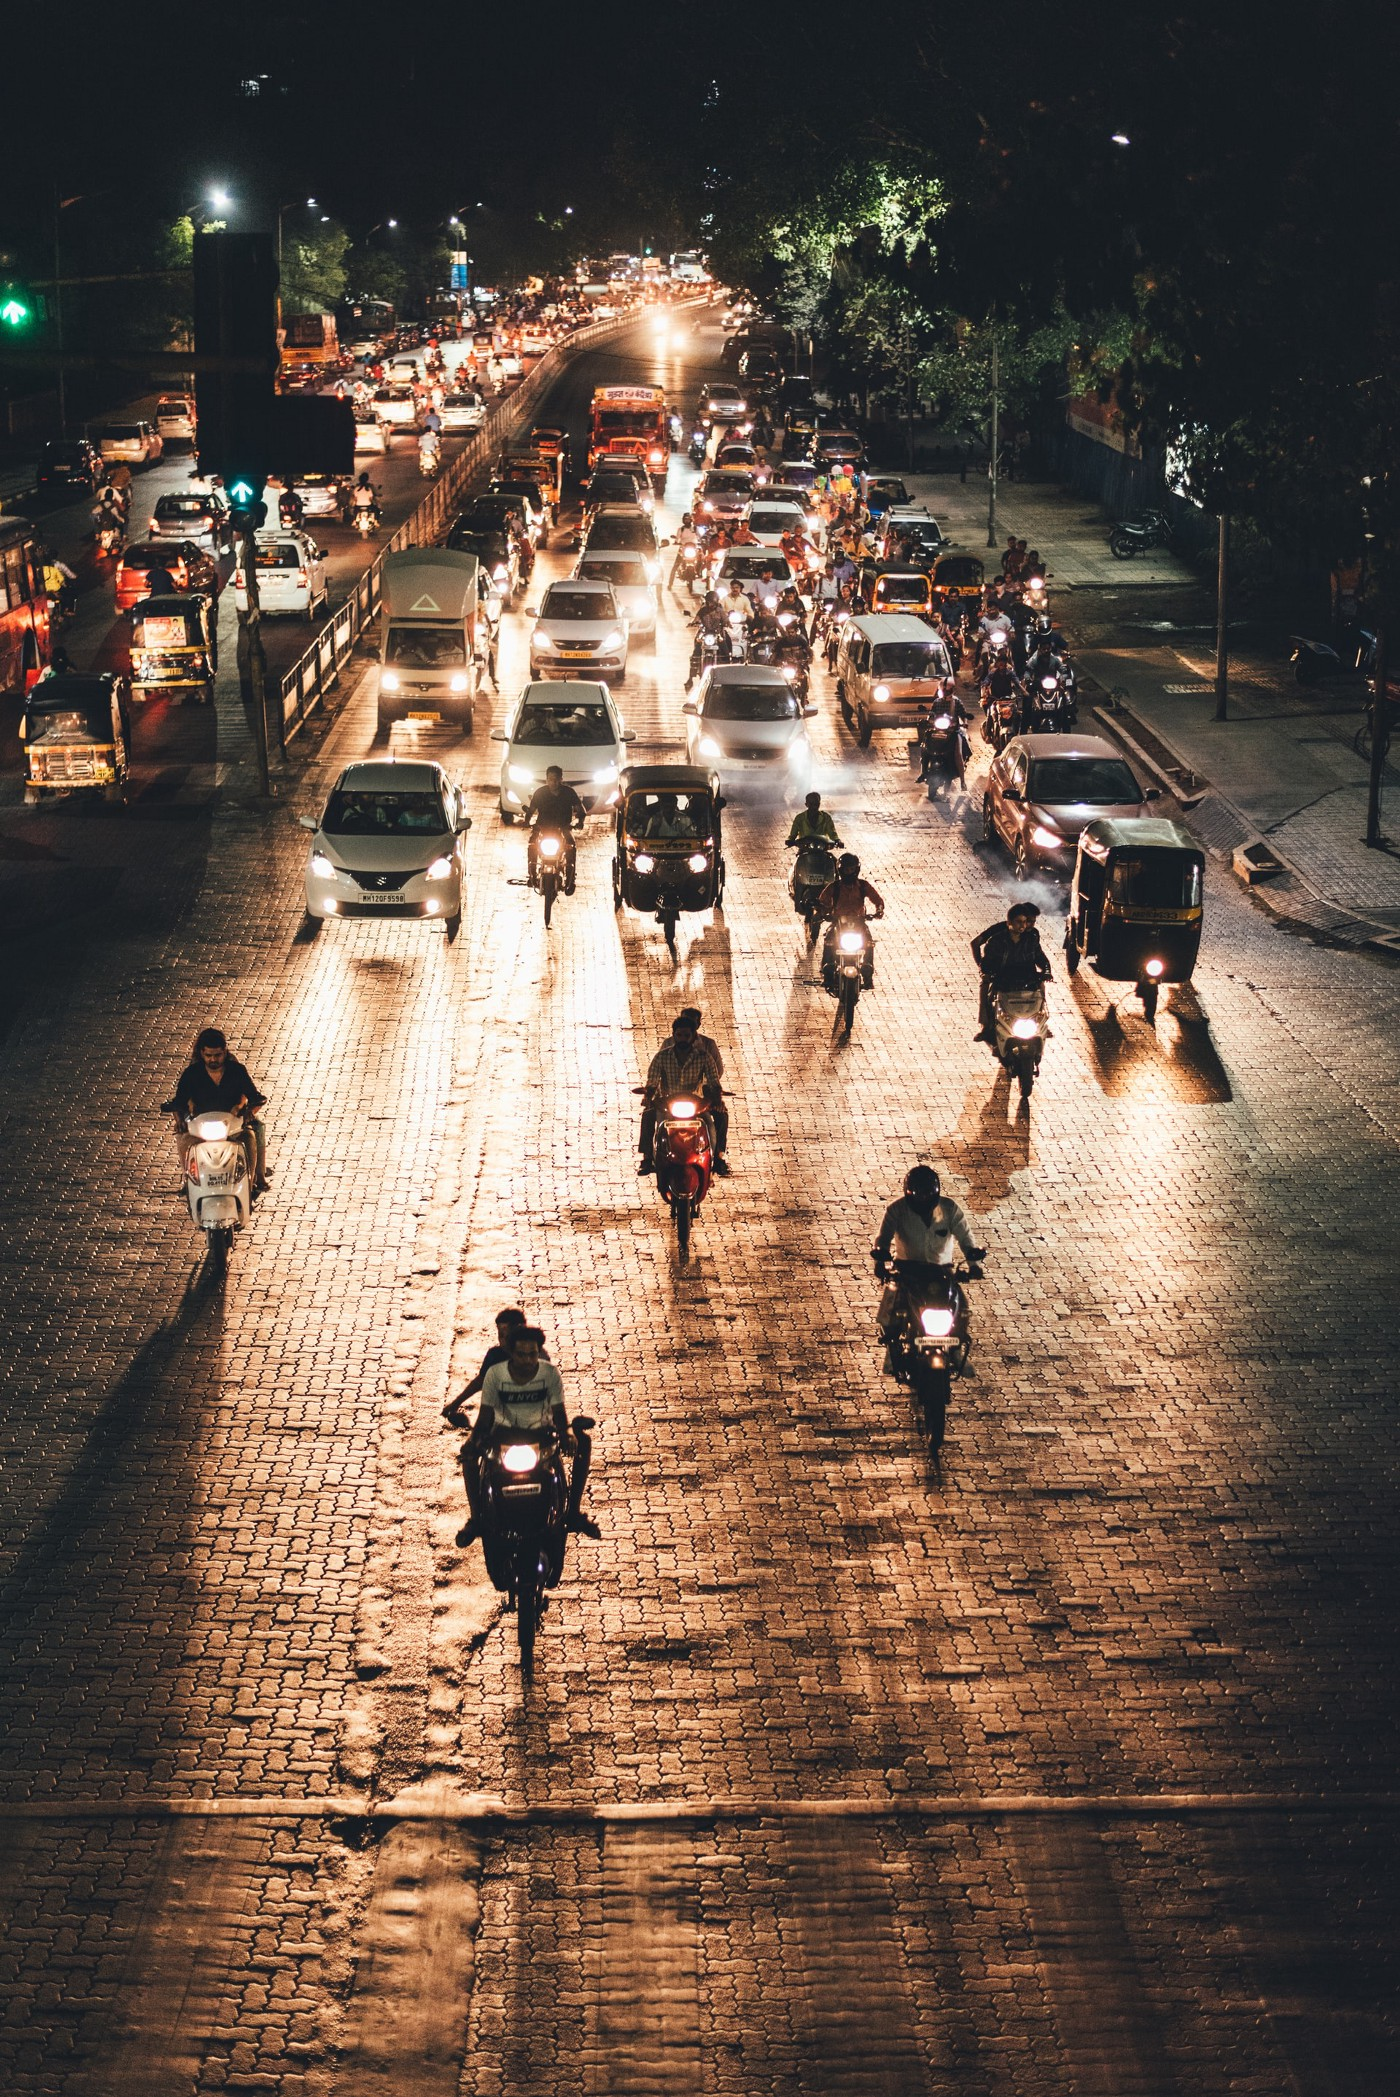 A view of Indian traffic at night, with motorcycles and cars coming toward the viewer